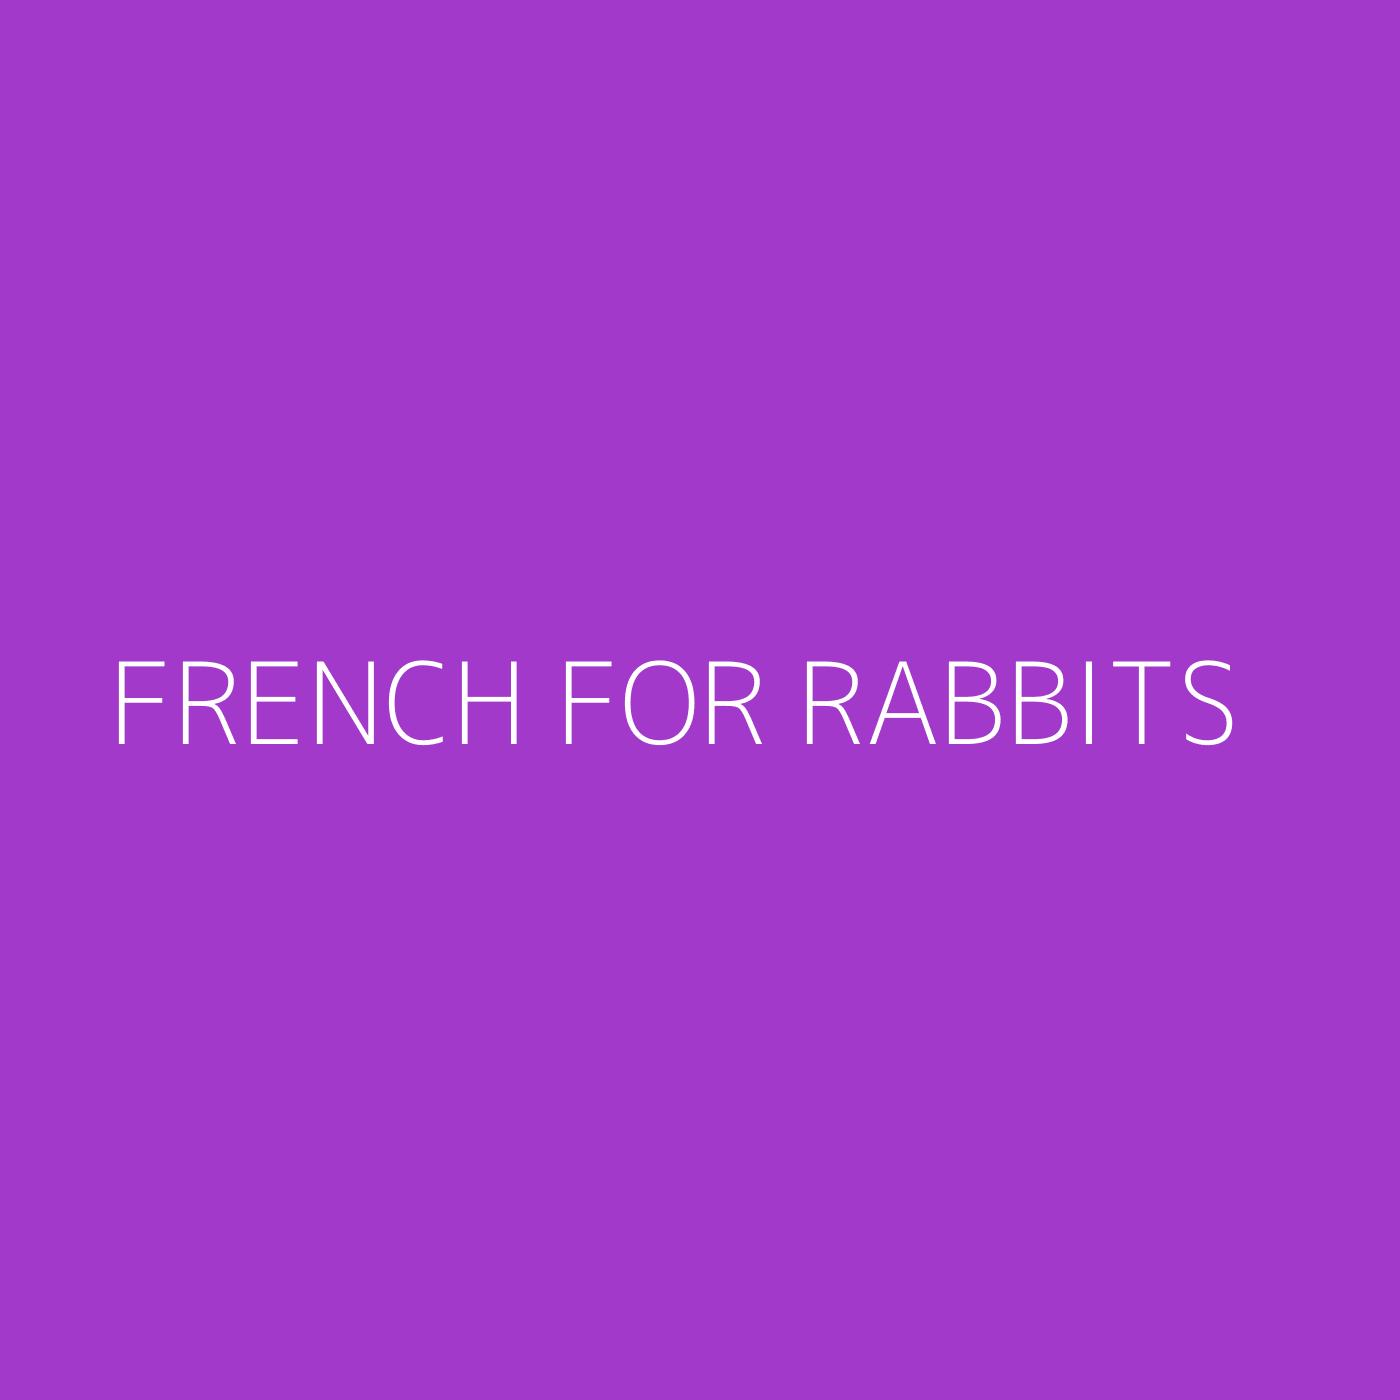 French For Rabbits Playlist Artwork